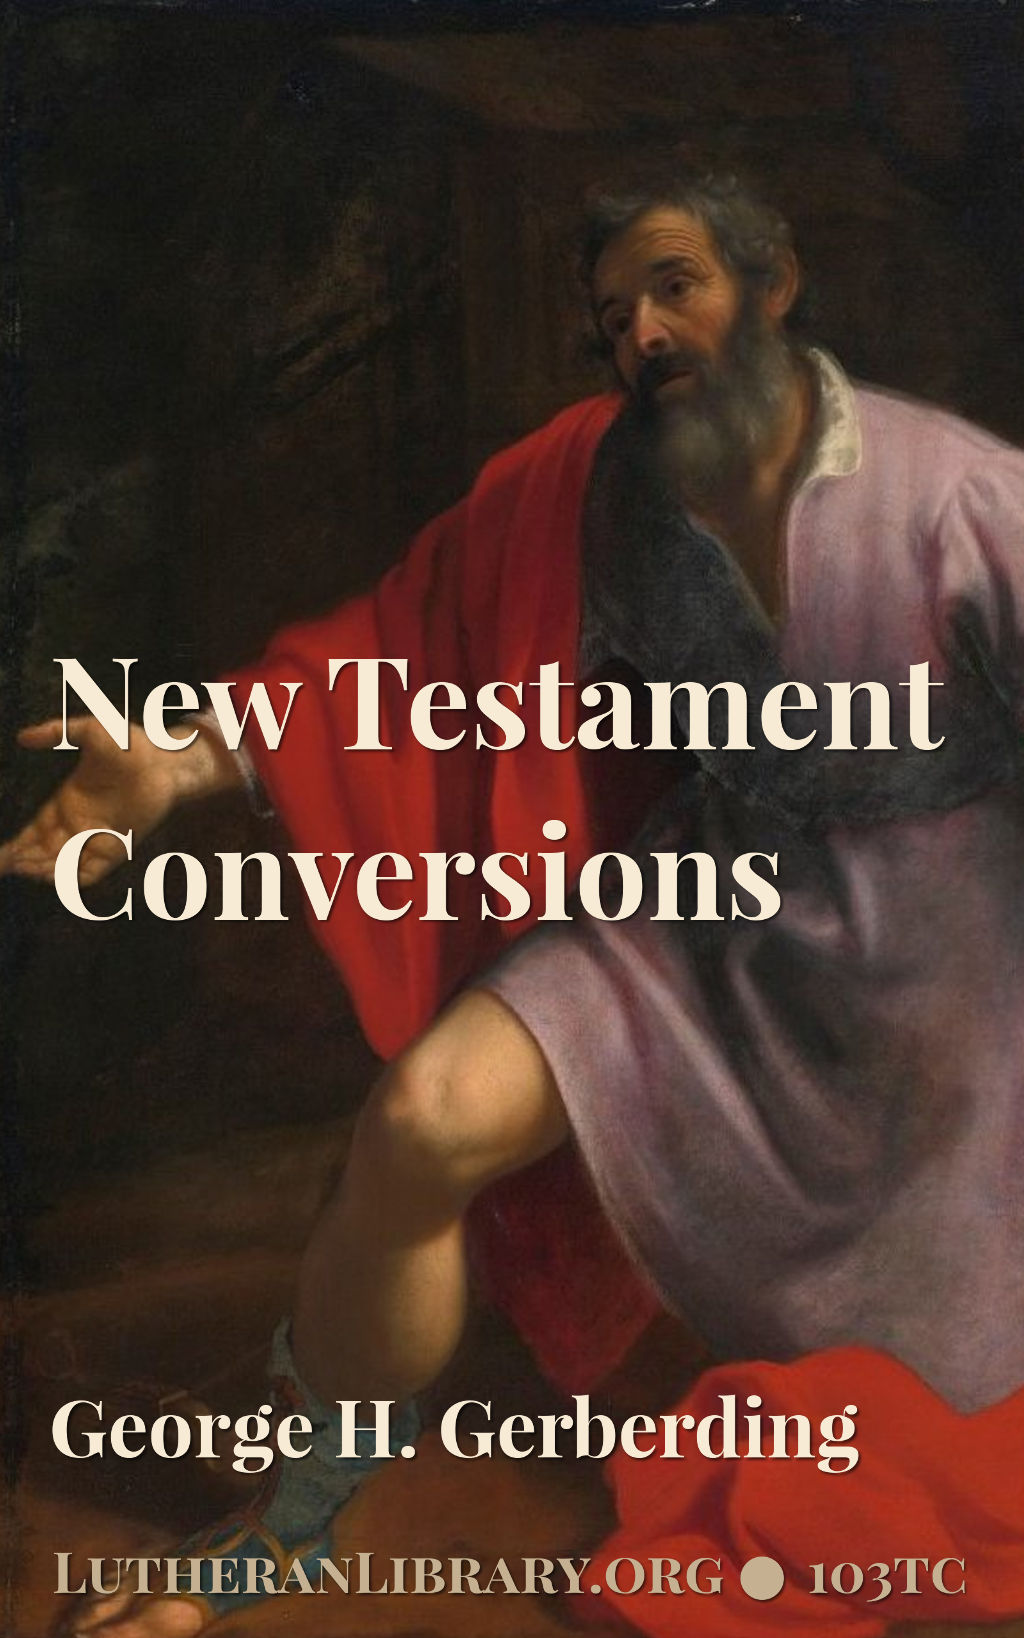 New Testament Conversions by George H. Gerberding